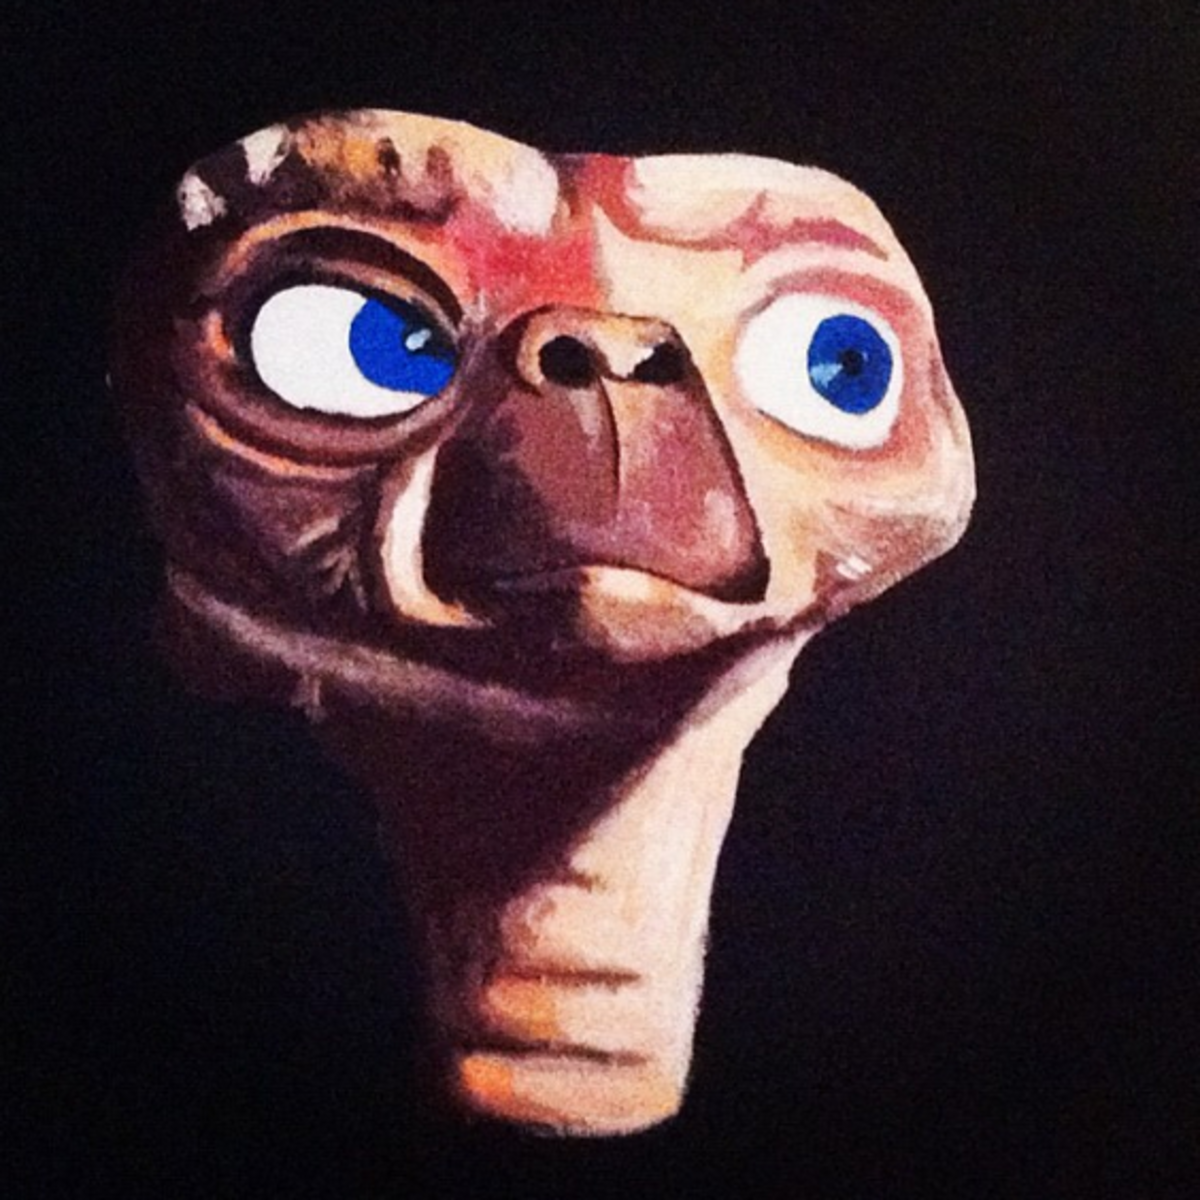 The E.T. portrait, which now hangs in the author's home. (Photo: Alana Levinson)